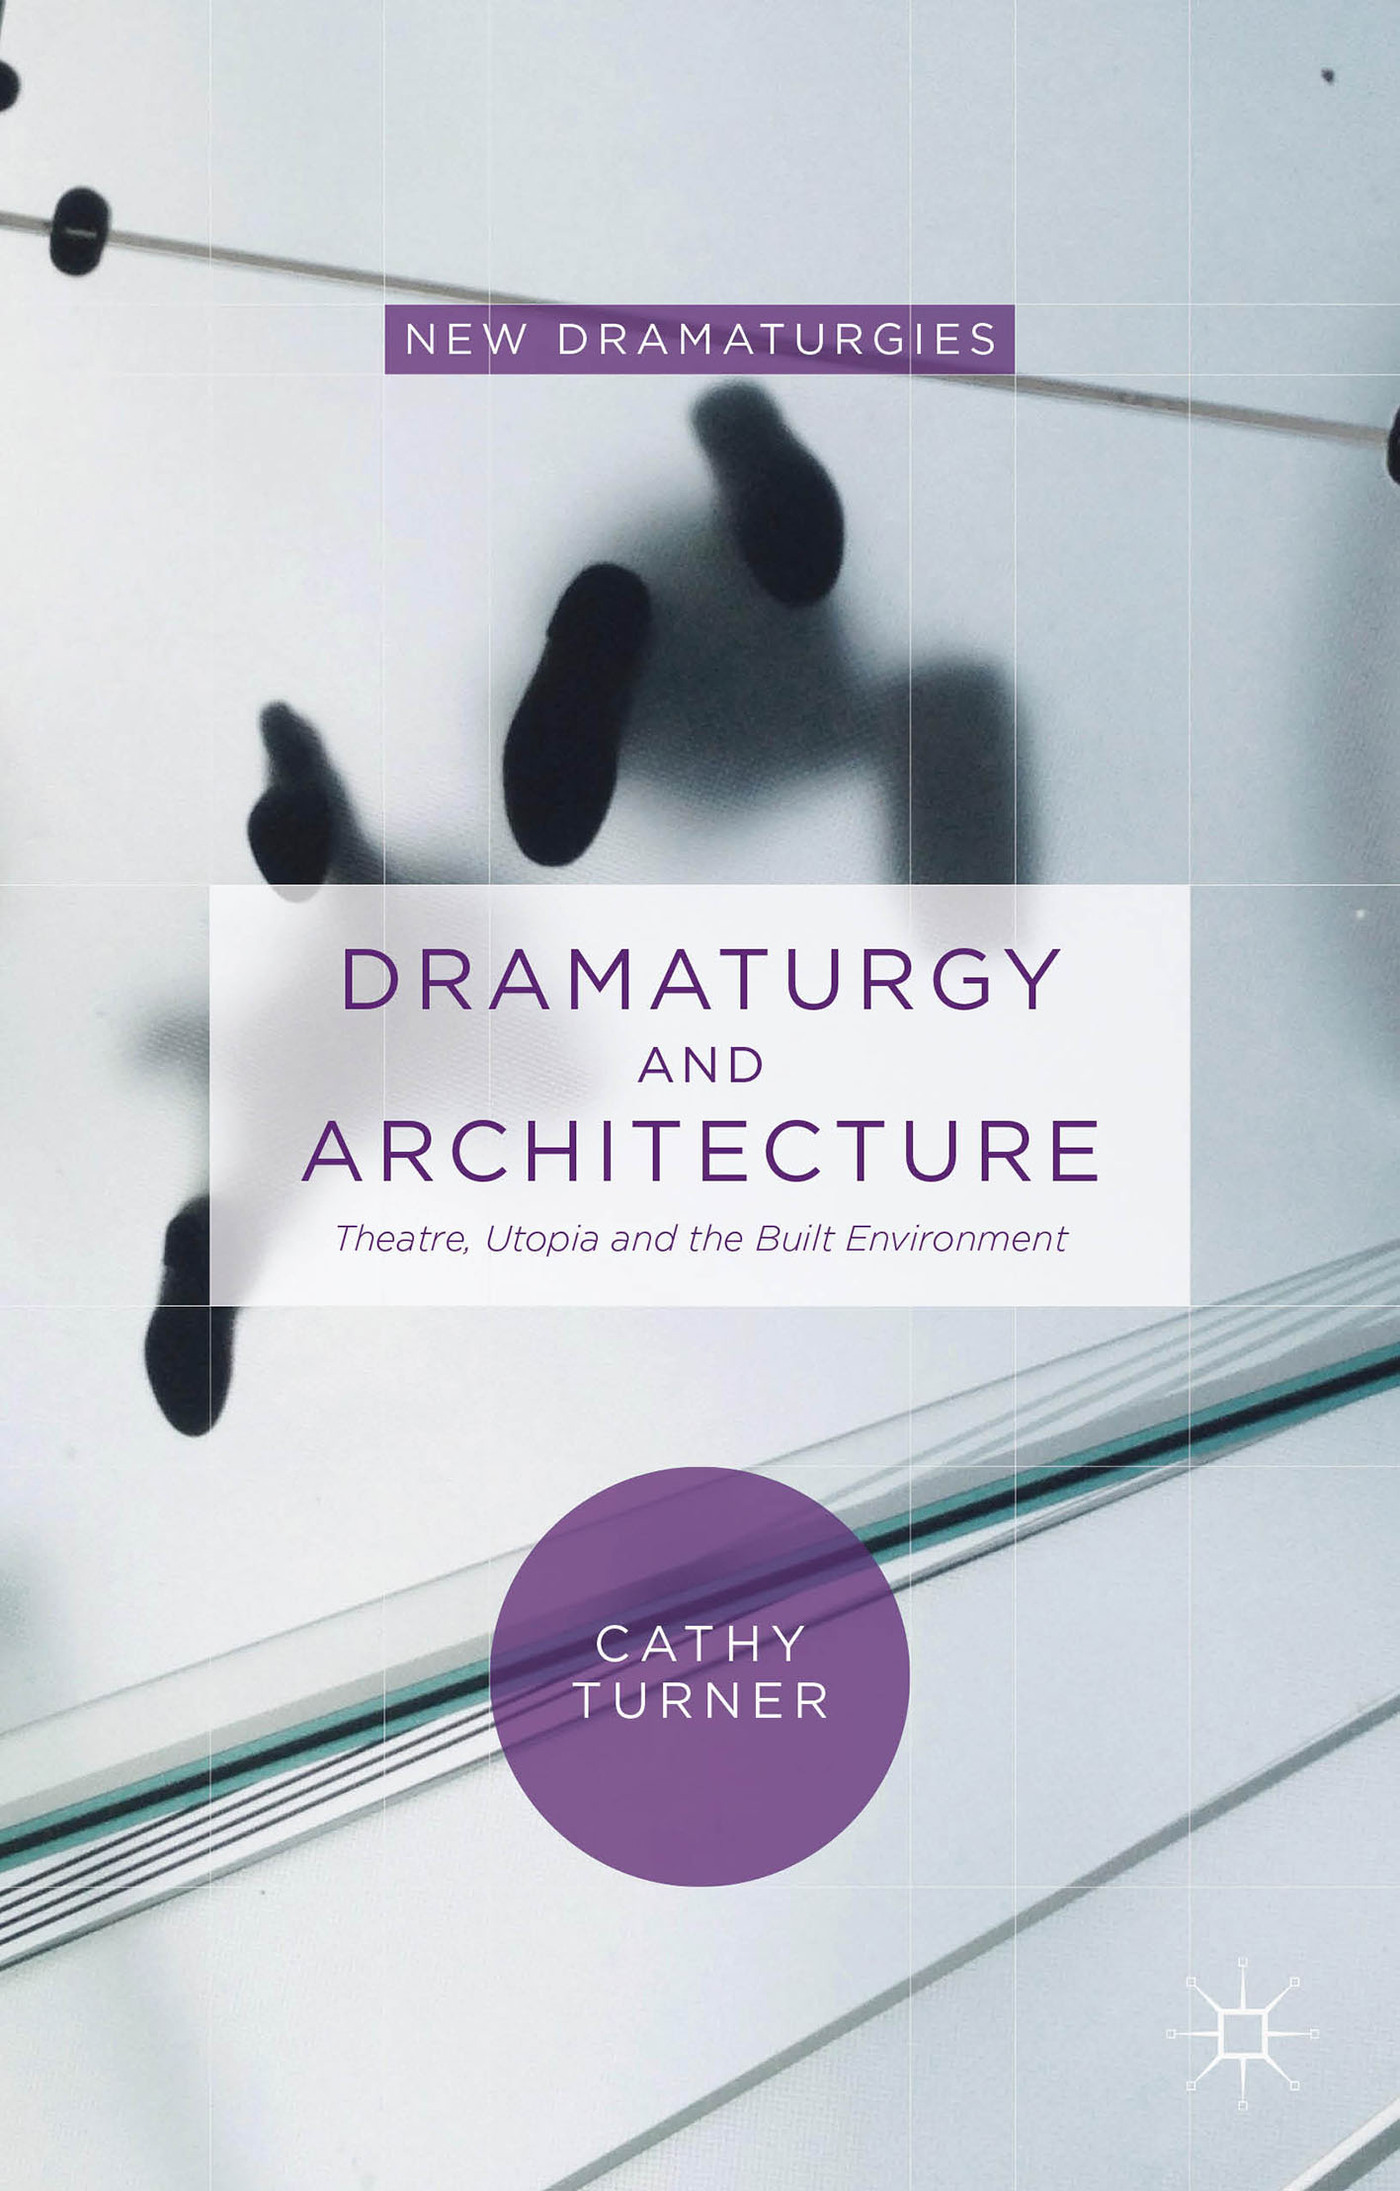 Dramaturgy and Architecture: Theatre, Utopia and the Built Environment Cathy Turner